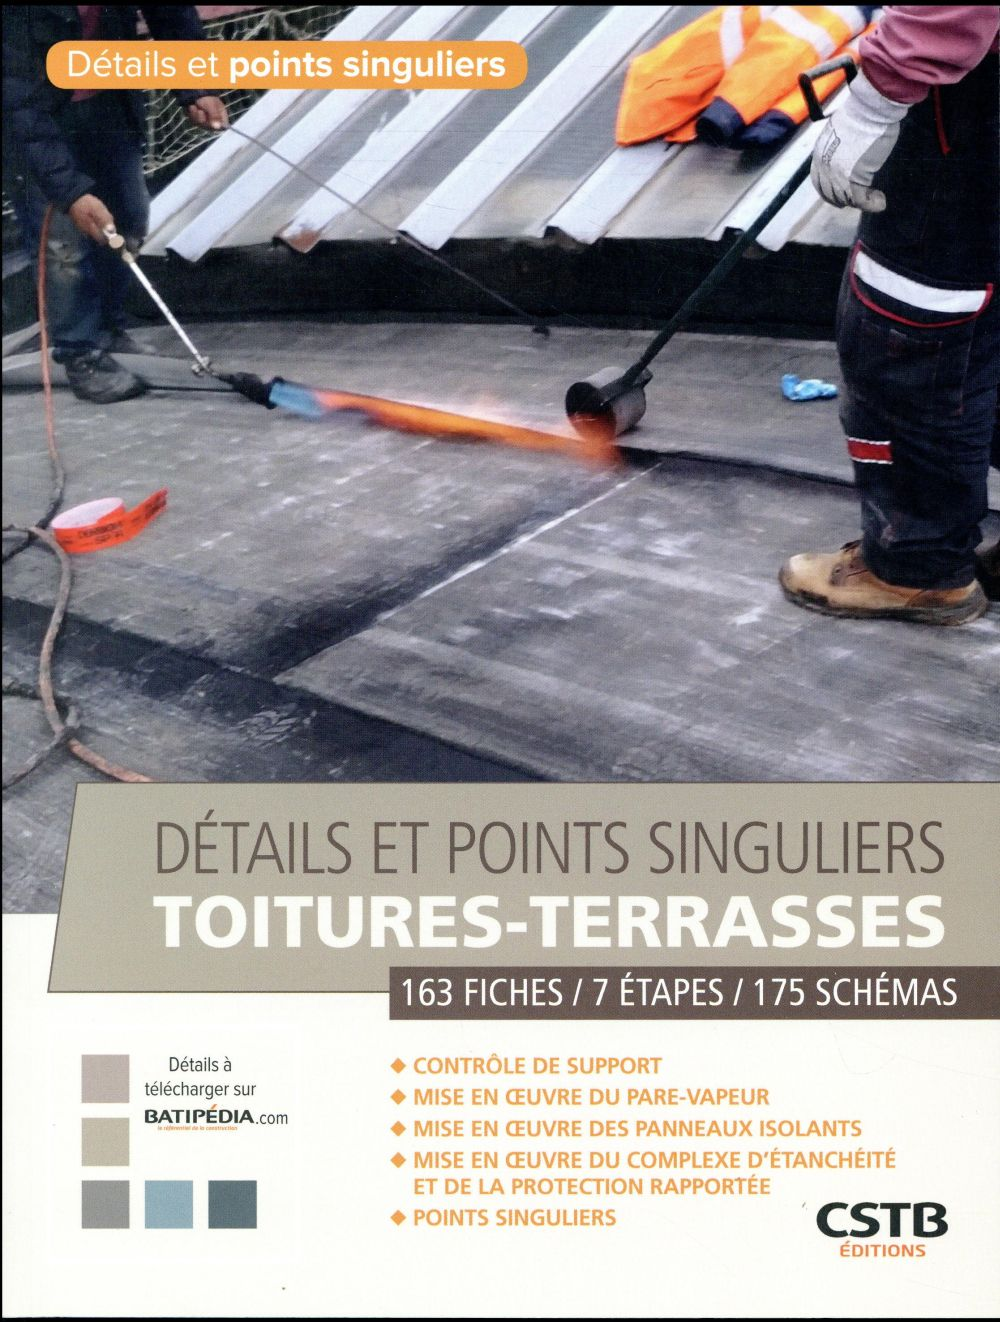 DETAILS ET POINTS SINGULIERS TOITURES TERRASSES